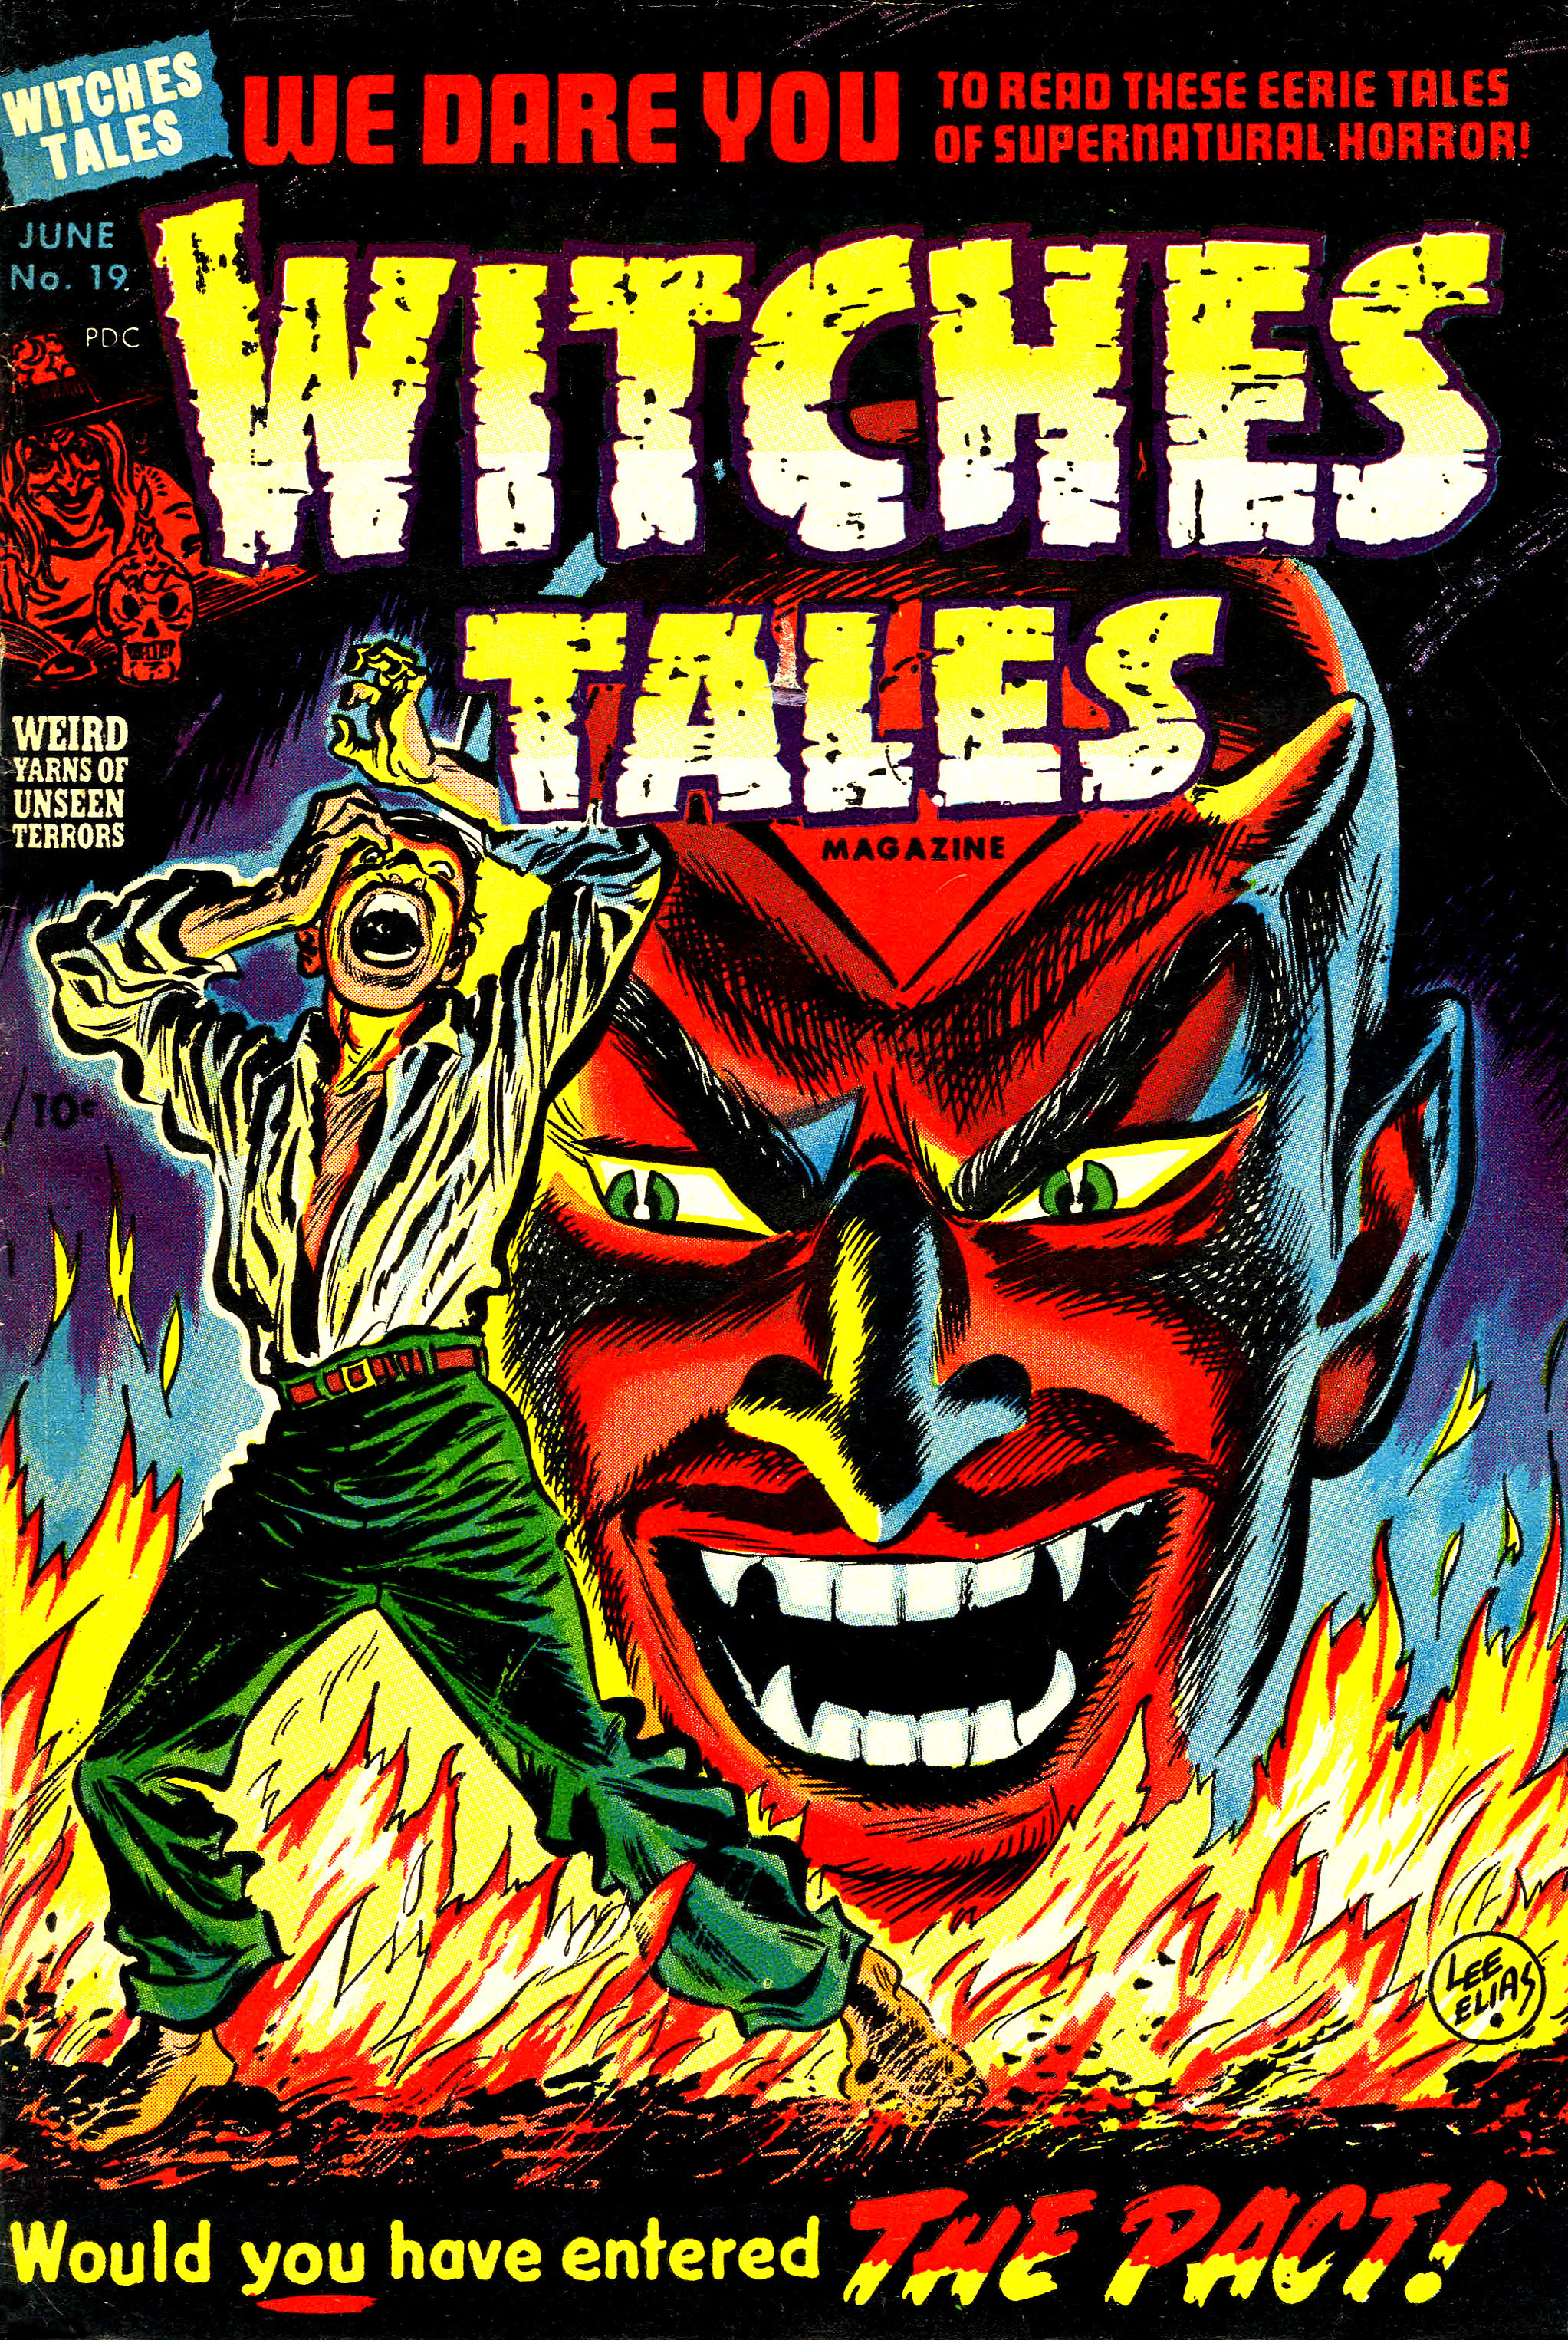 Witches Tales #19, Lee Elias Cover (Harvey, 1953)